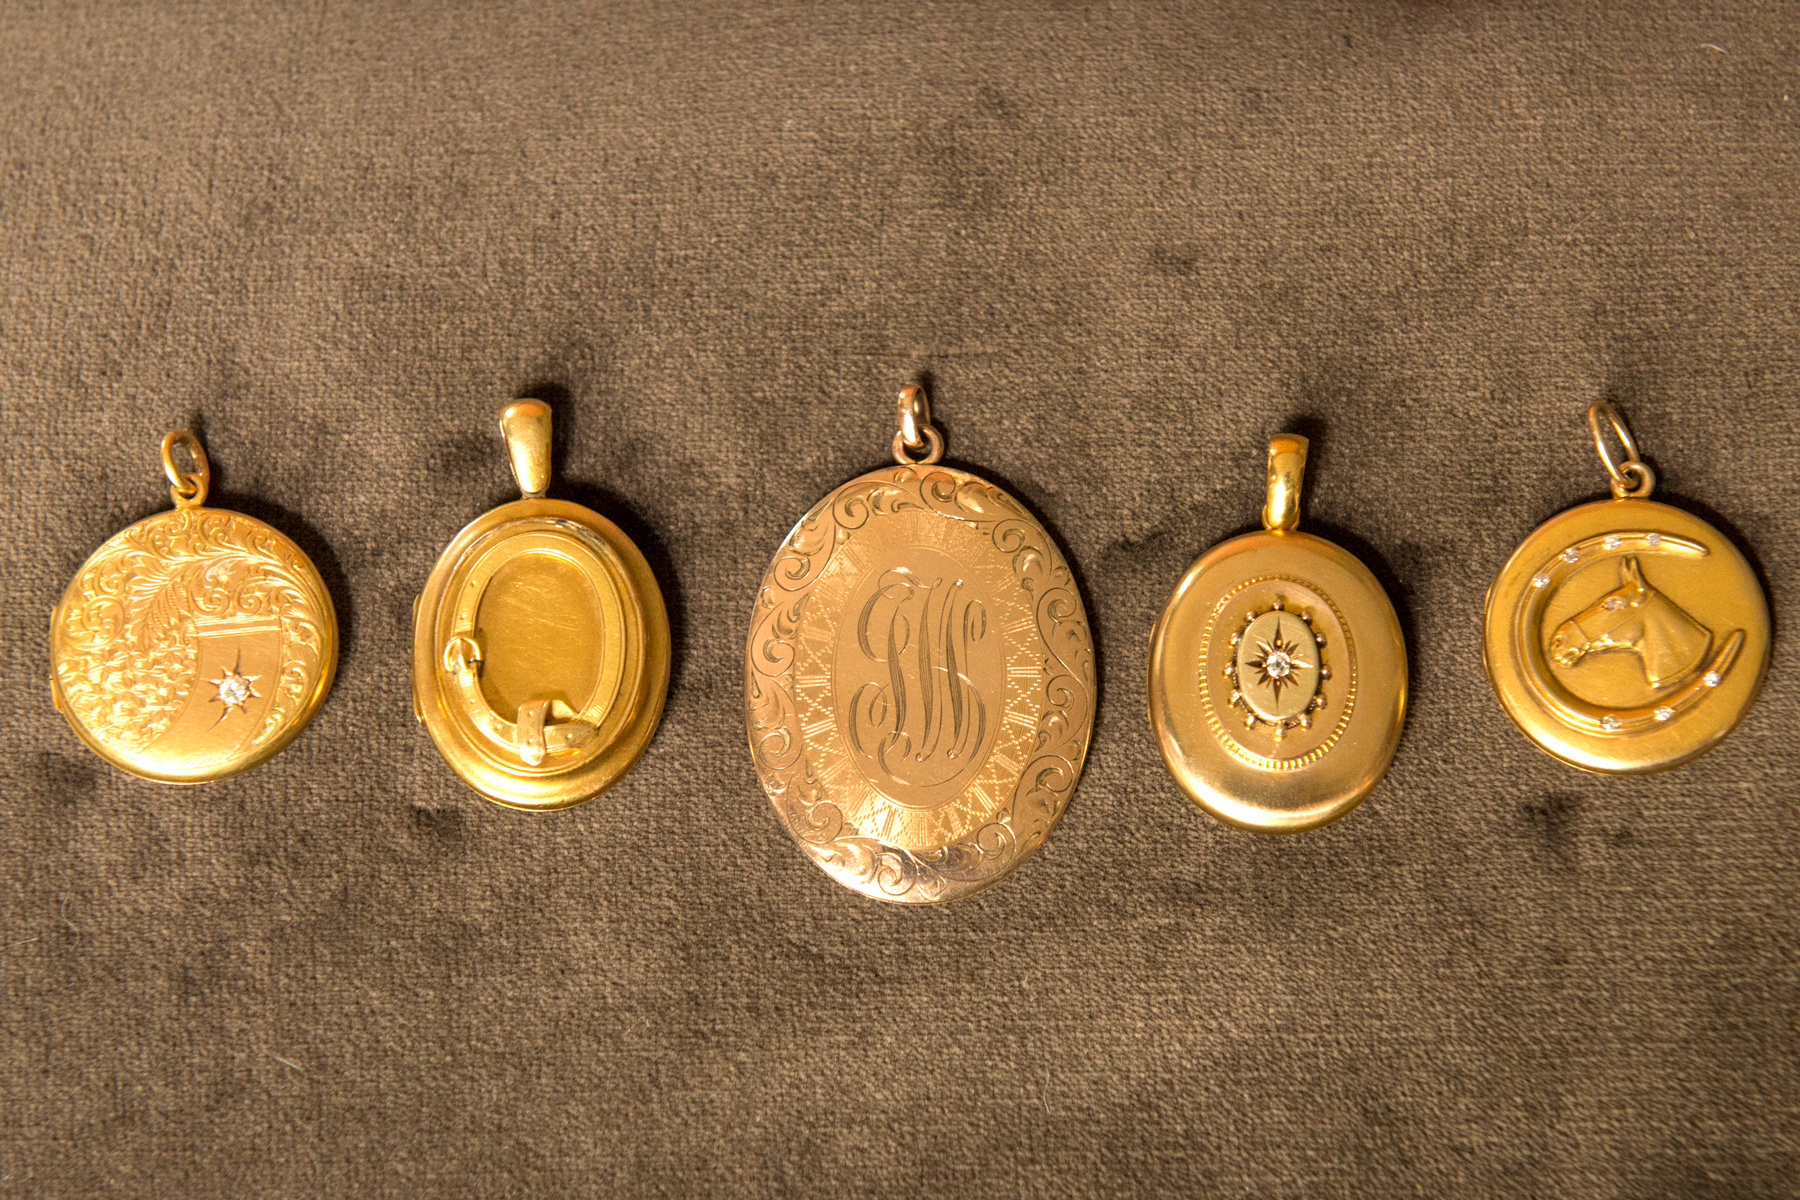 Gold lockets from Croghan's Jewel Box in Charleston